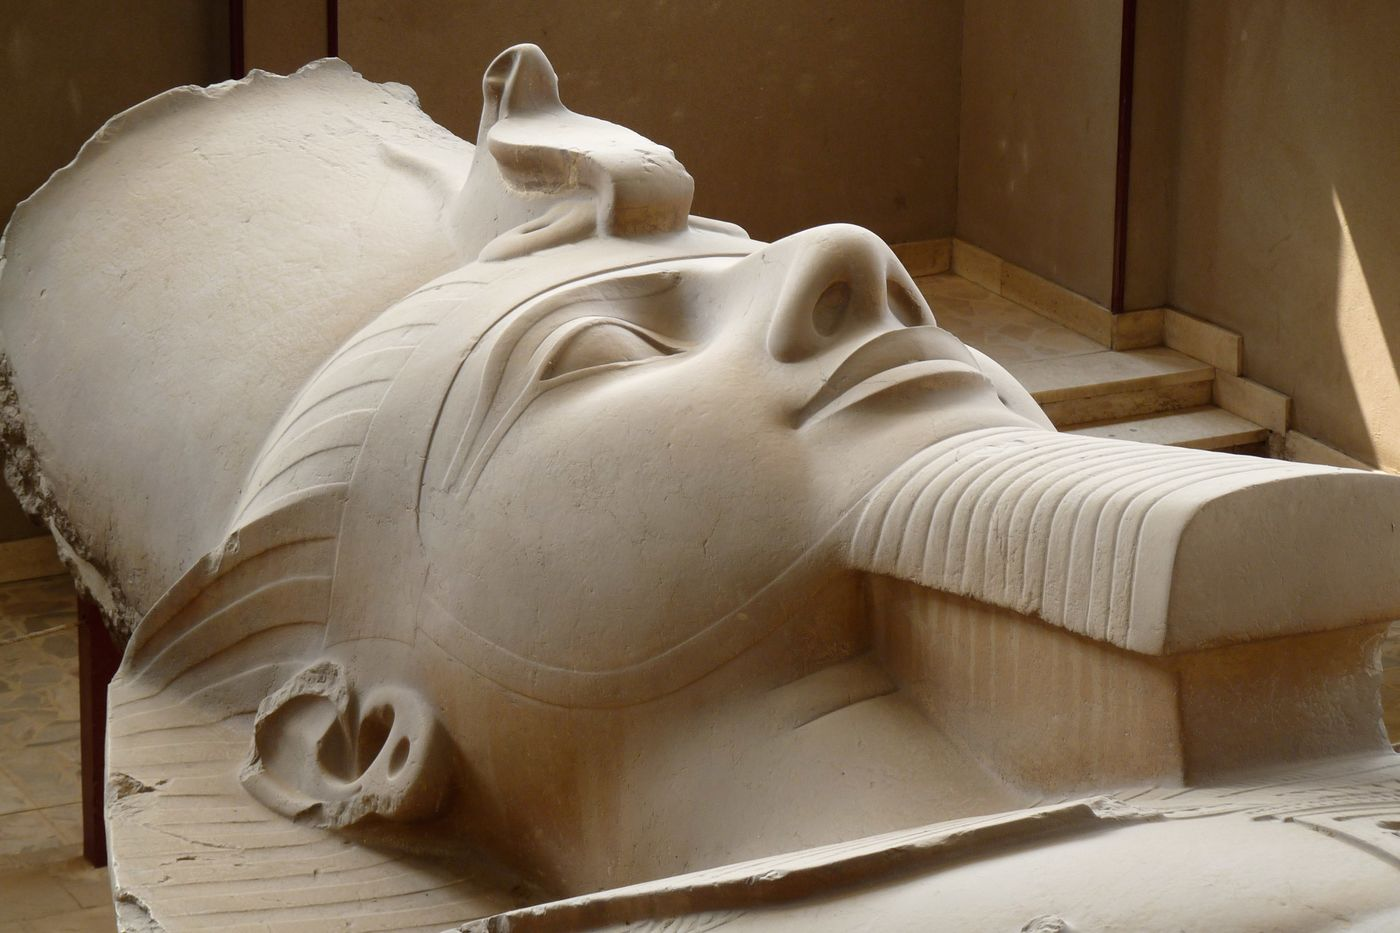 A statue of Ramses II near Giza